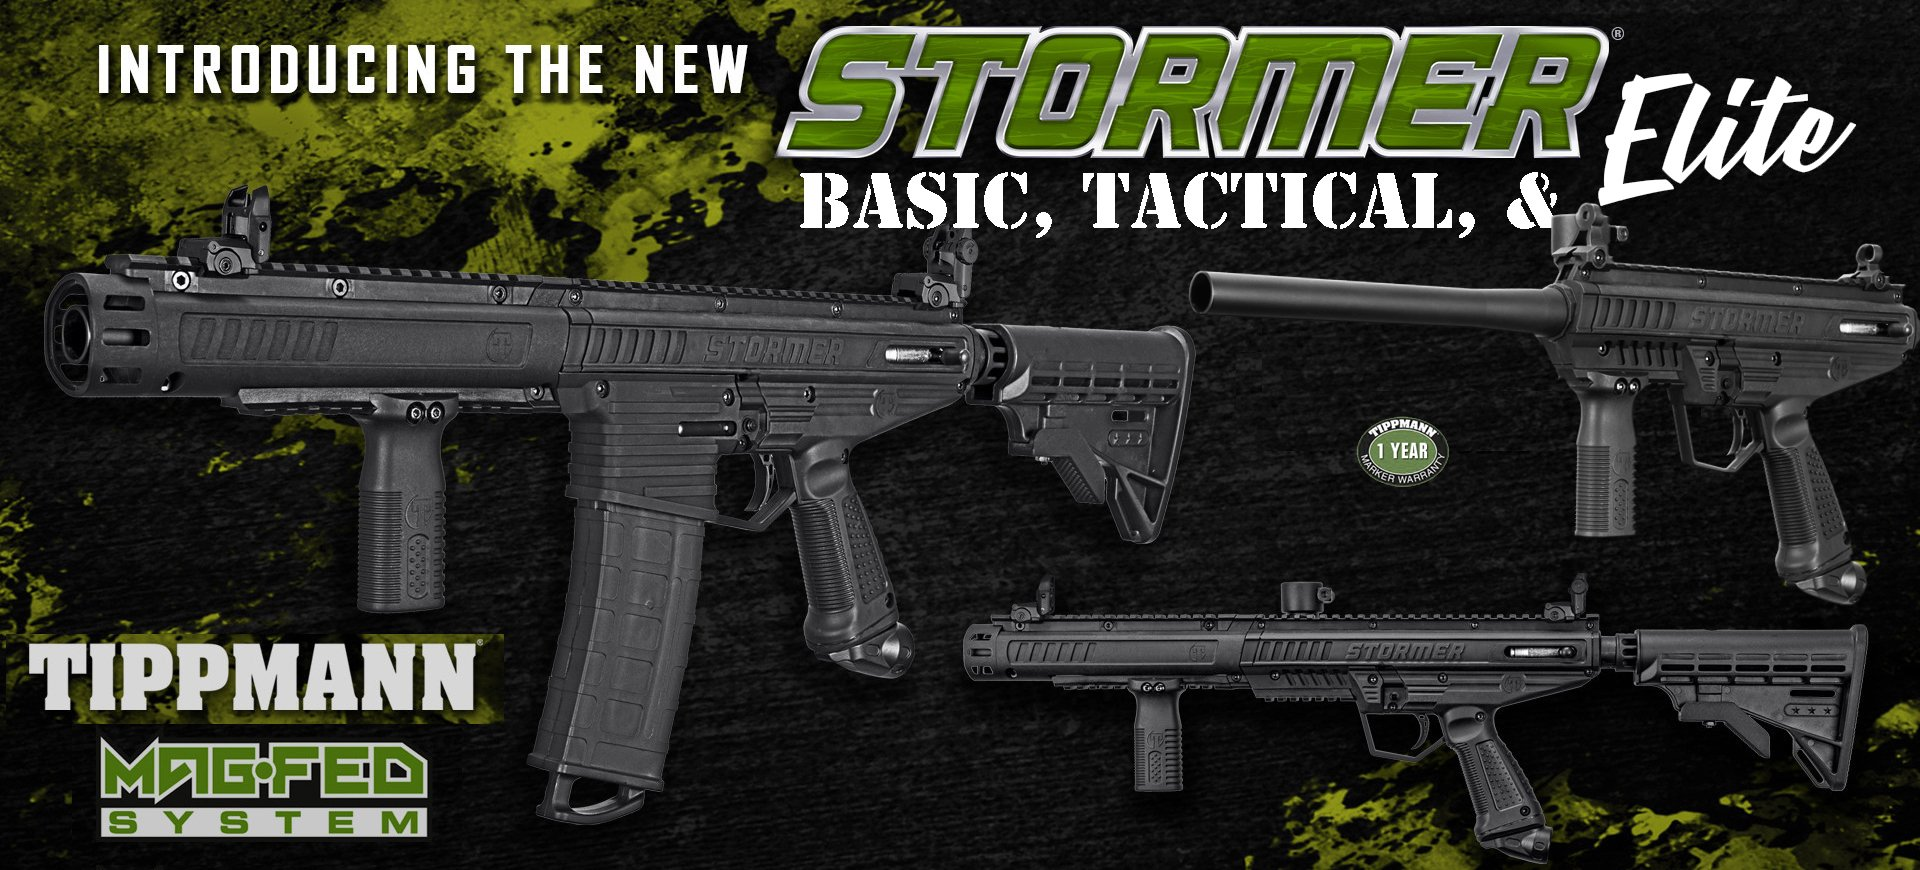 Tippmann STORMER Series Paintball Guns & Packages AVAILABLE NOW! - PaintballDeals.com